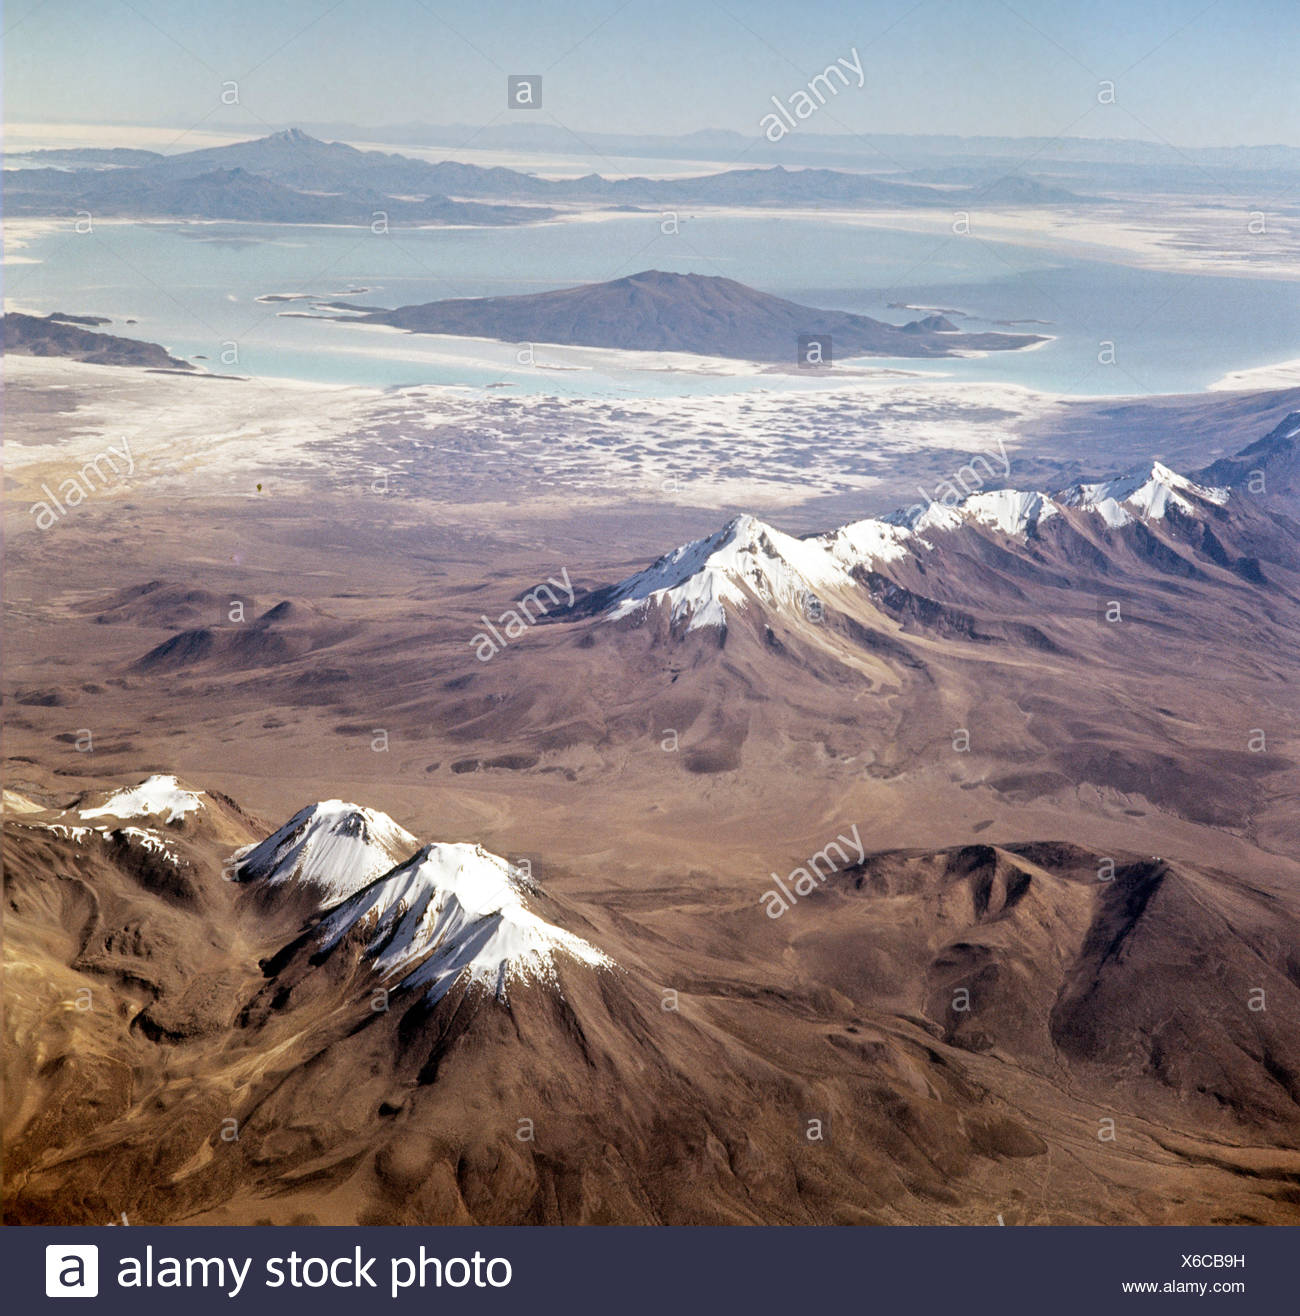 Southern Altiplano, salt and natron lakes, Bolivia - Stock Image